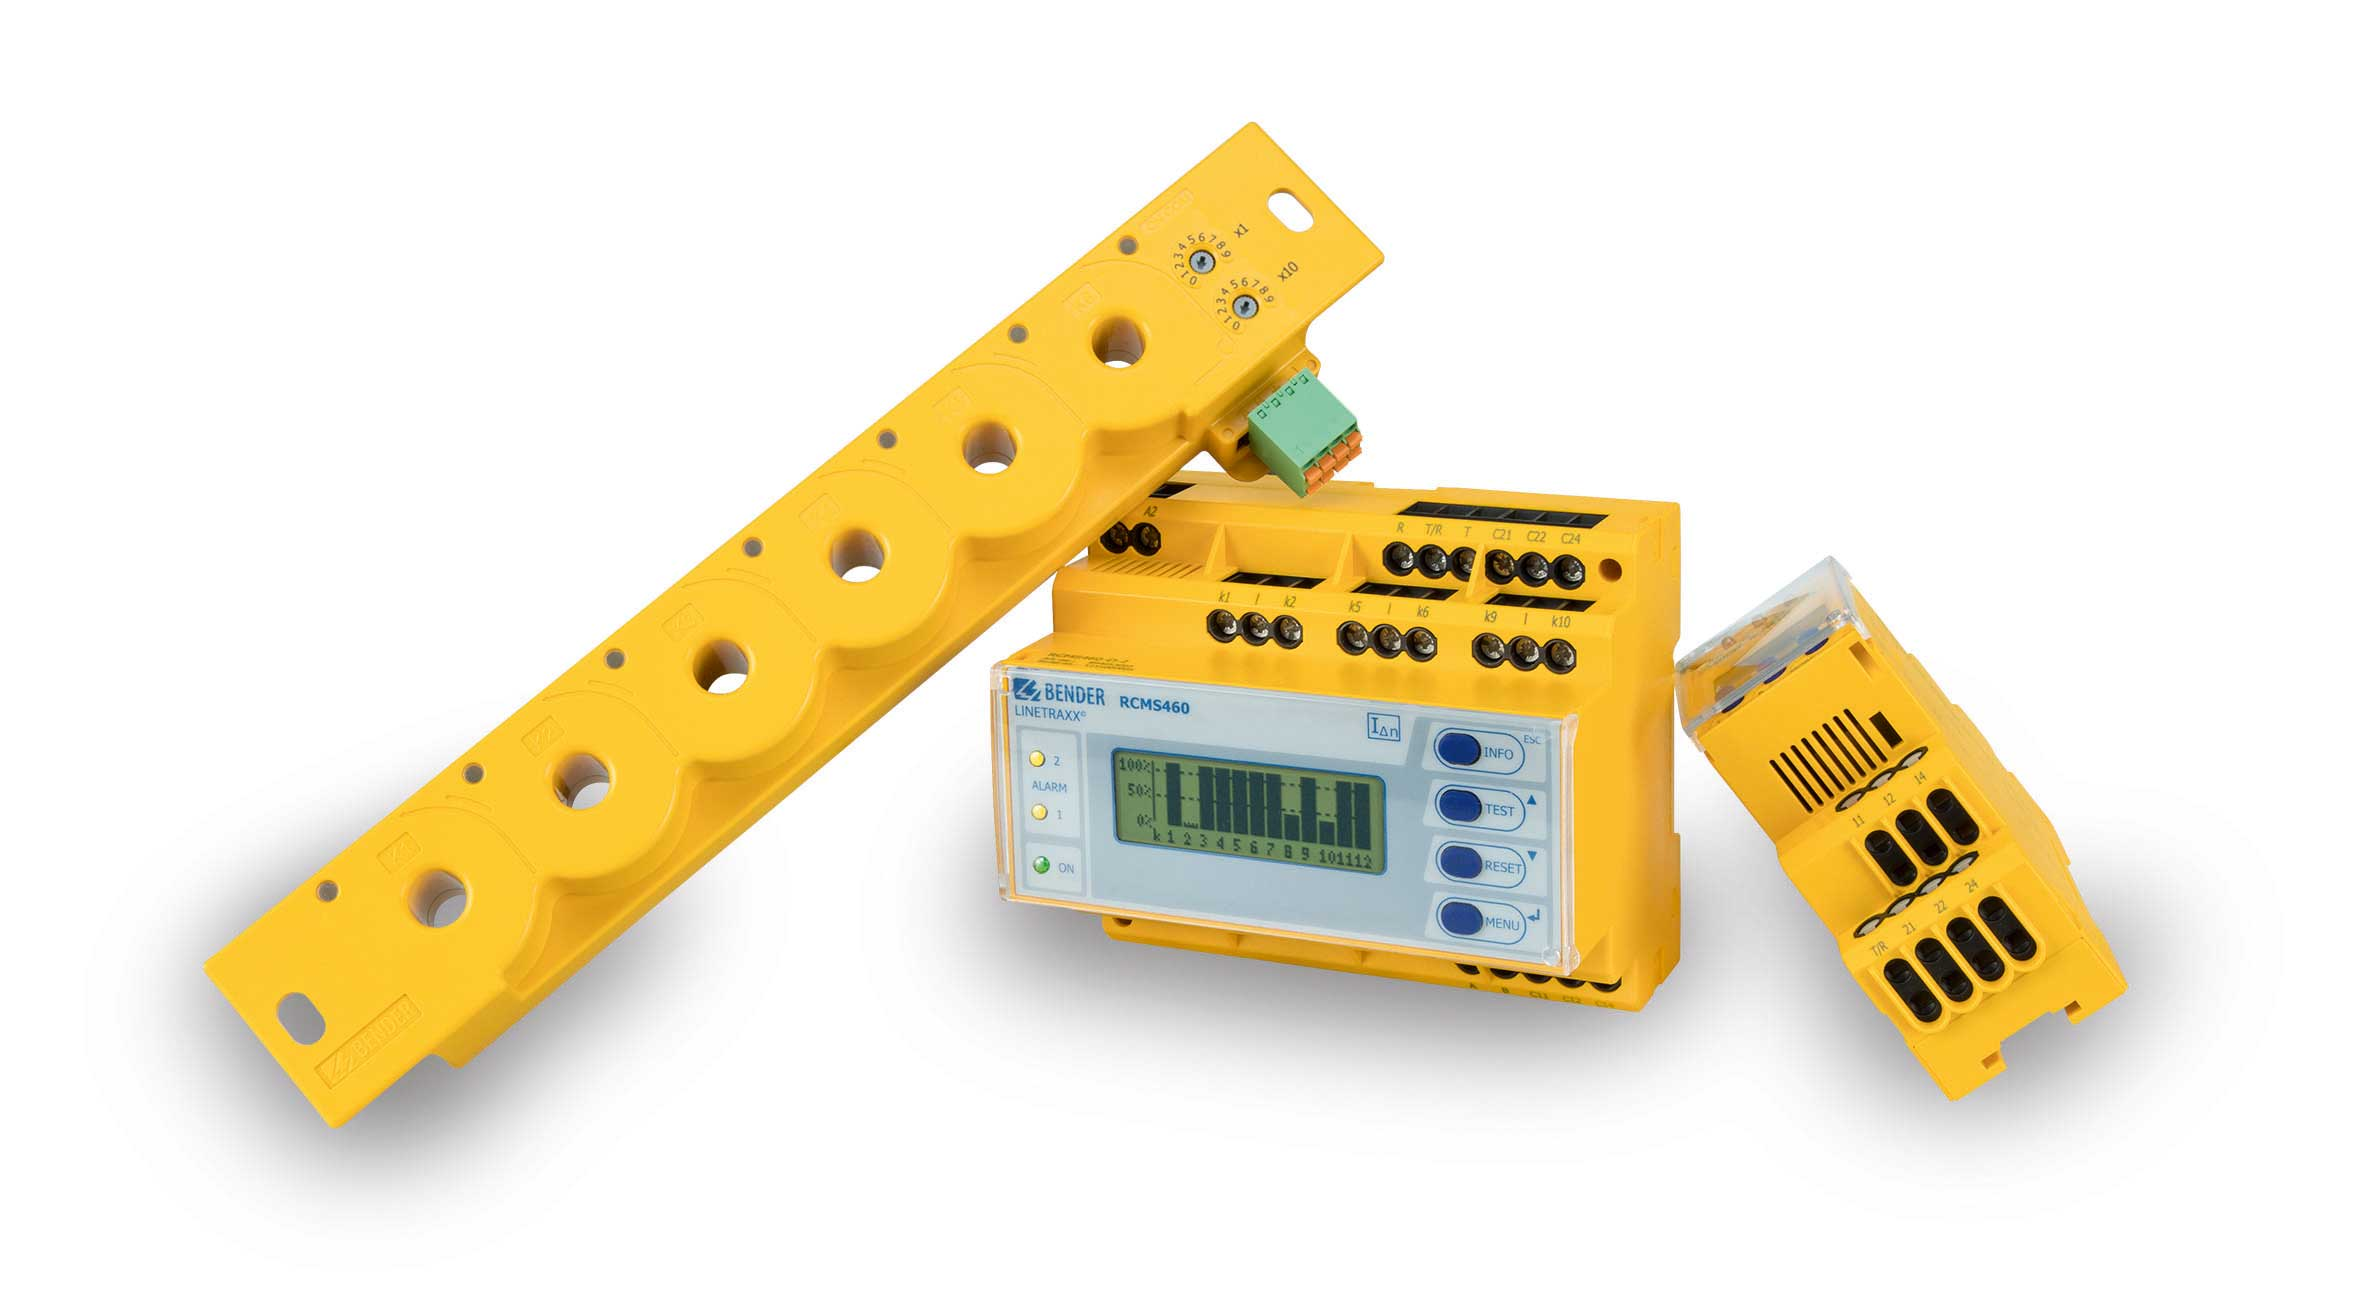 Residual current monitoring: Signalling instead of shutting down